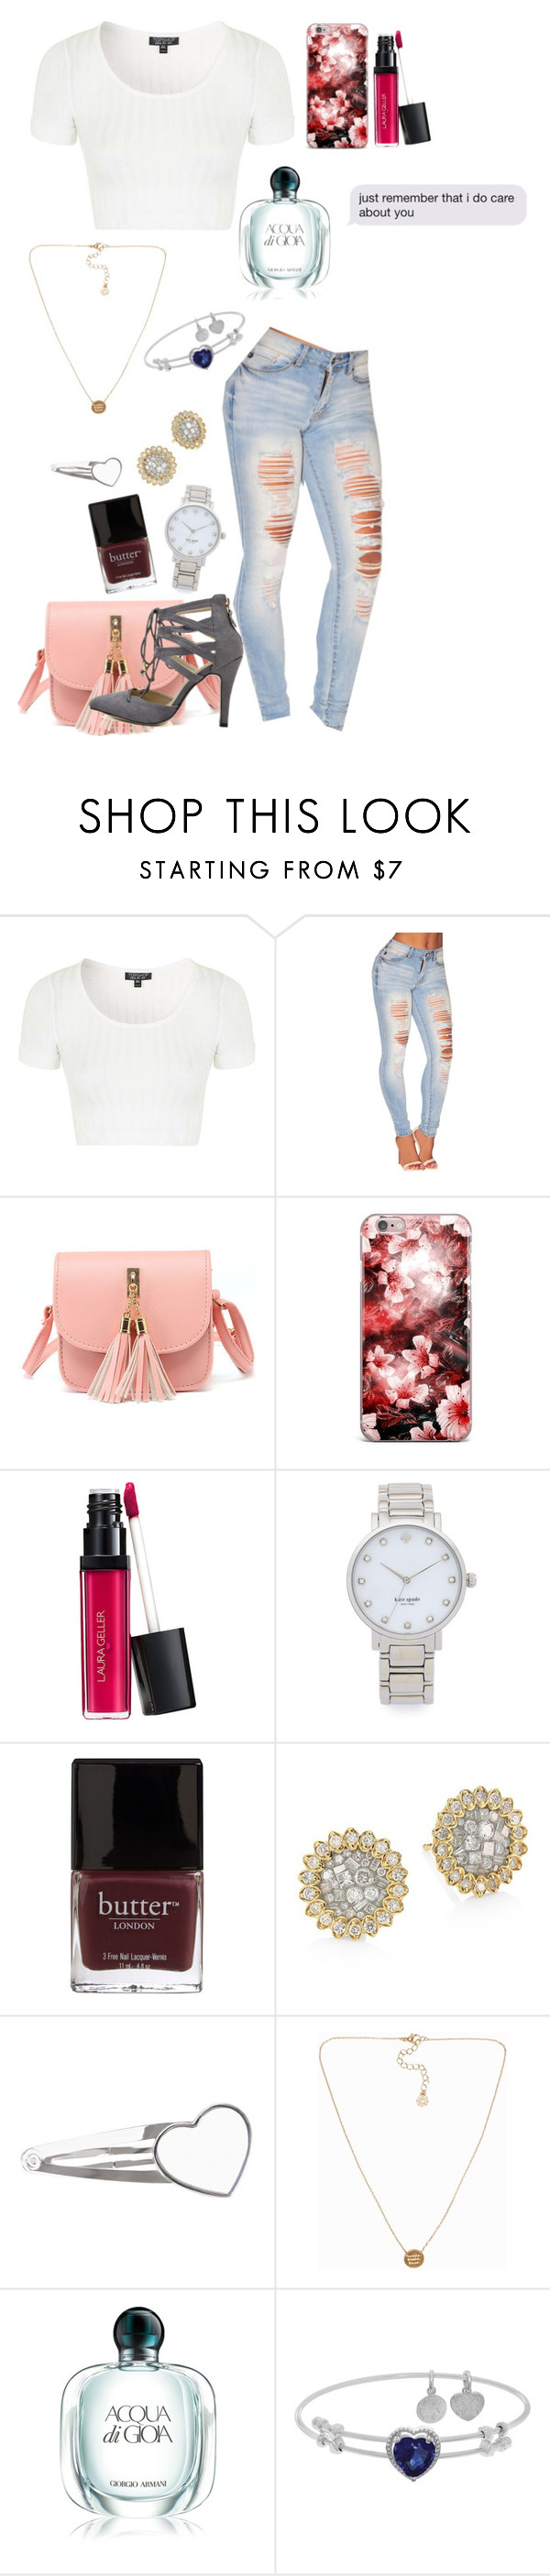 """""""Then y did u hurt me😔🔪"""" by enniahxox ❤ liked on Polyvore featuring Topshop, Kate Spade, Butter London, Plevé, Pieces and Armani Beauty"""